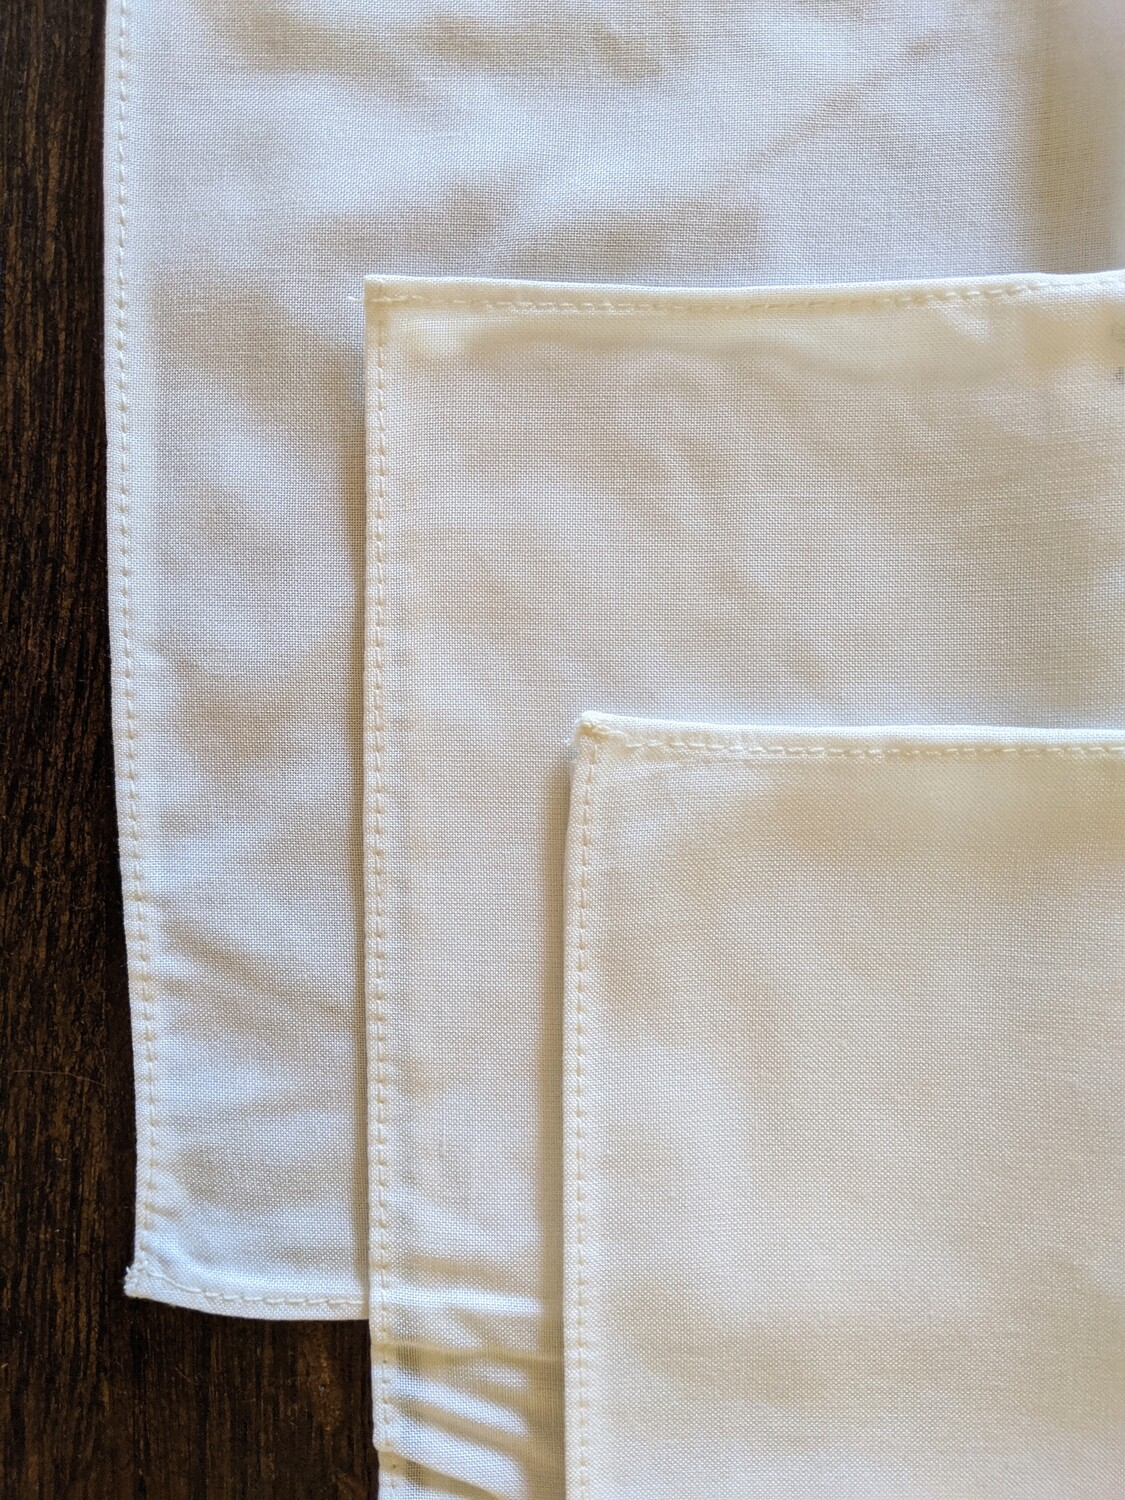 DIY SUPPLY - DYE IT YOURSELF -- A SET OF 3 BAMBOO SCARVES